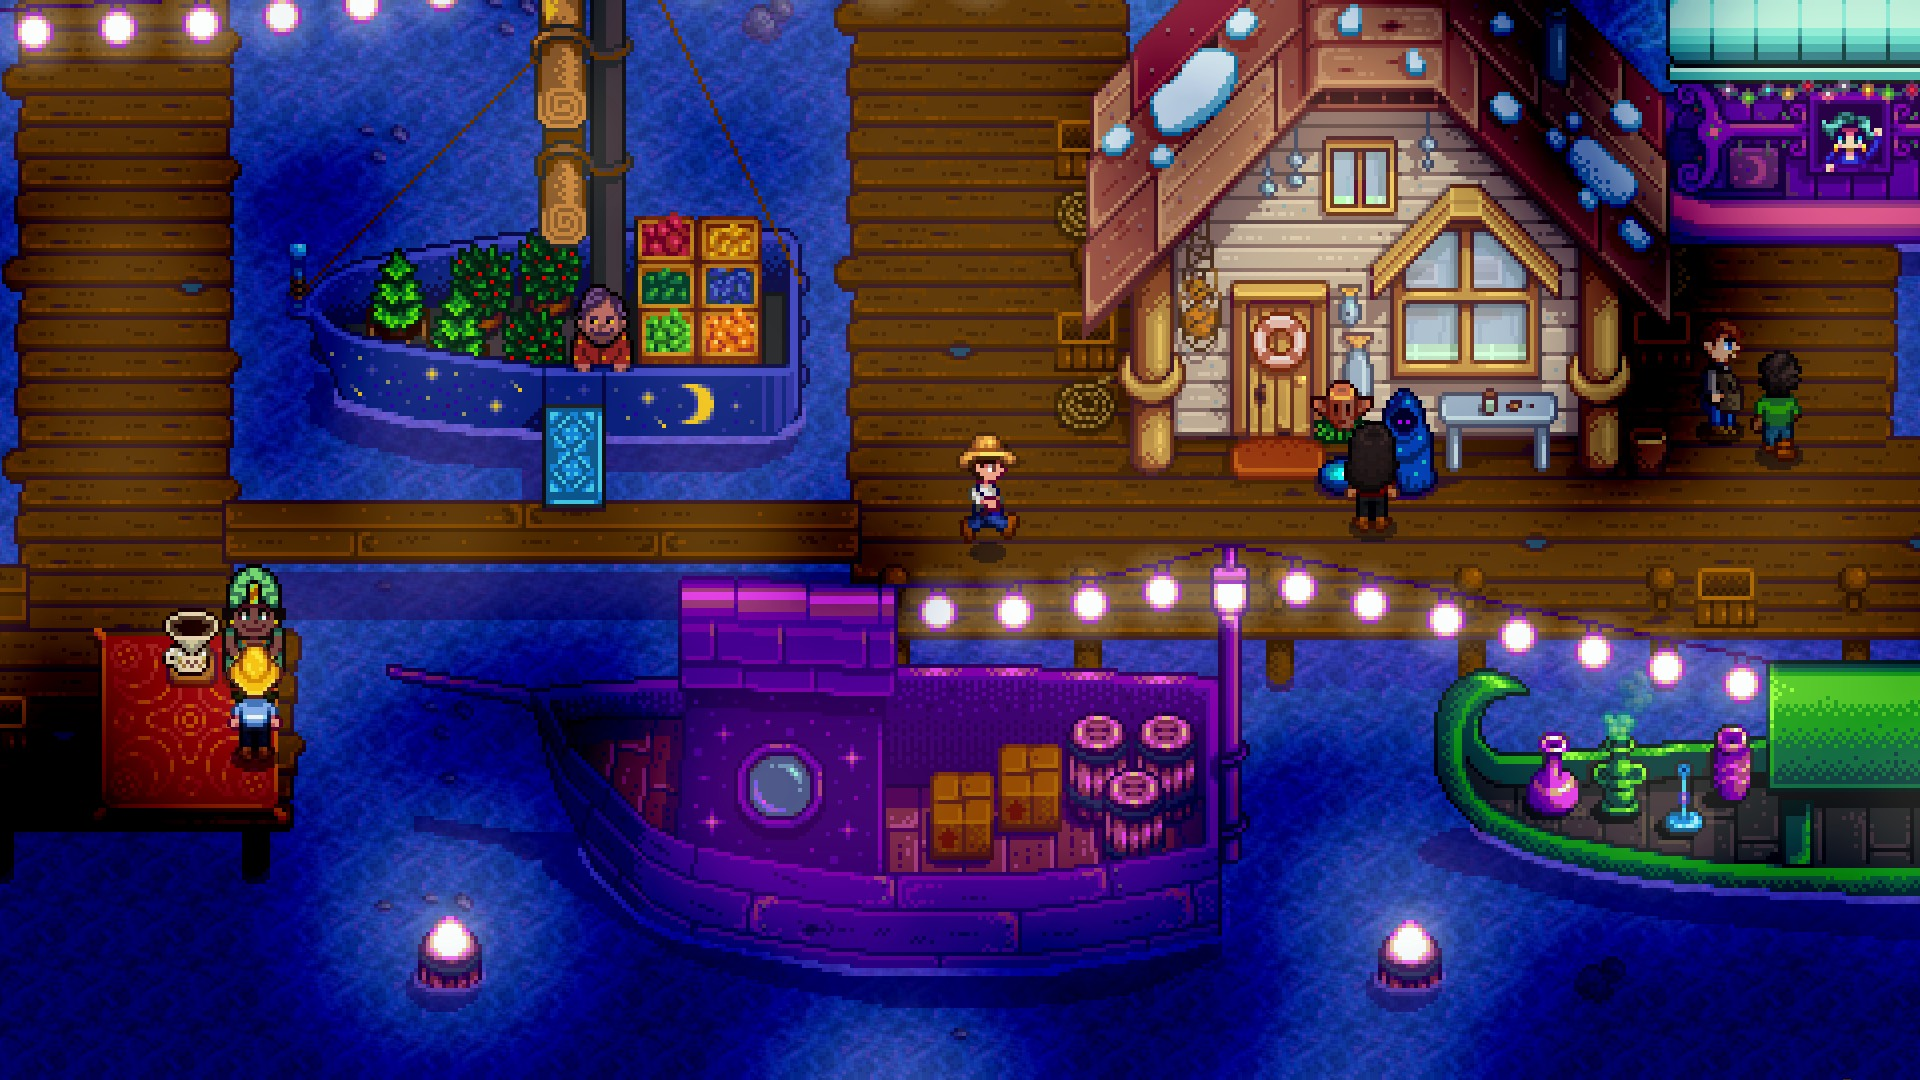 Stardew Valley screenshot of the game's Night Market, in which the pier is decorated with lights and vendors sell goods from various small boats.